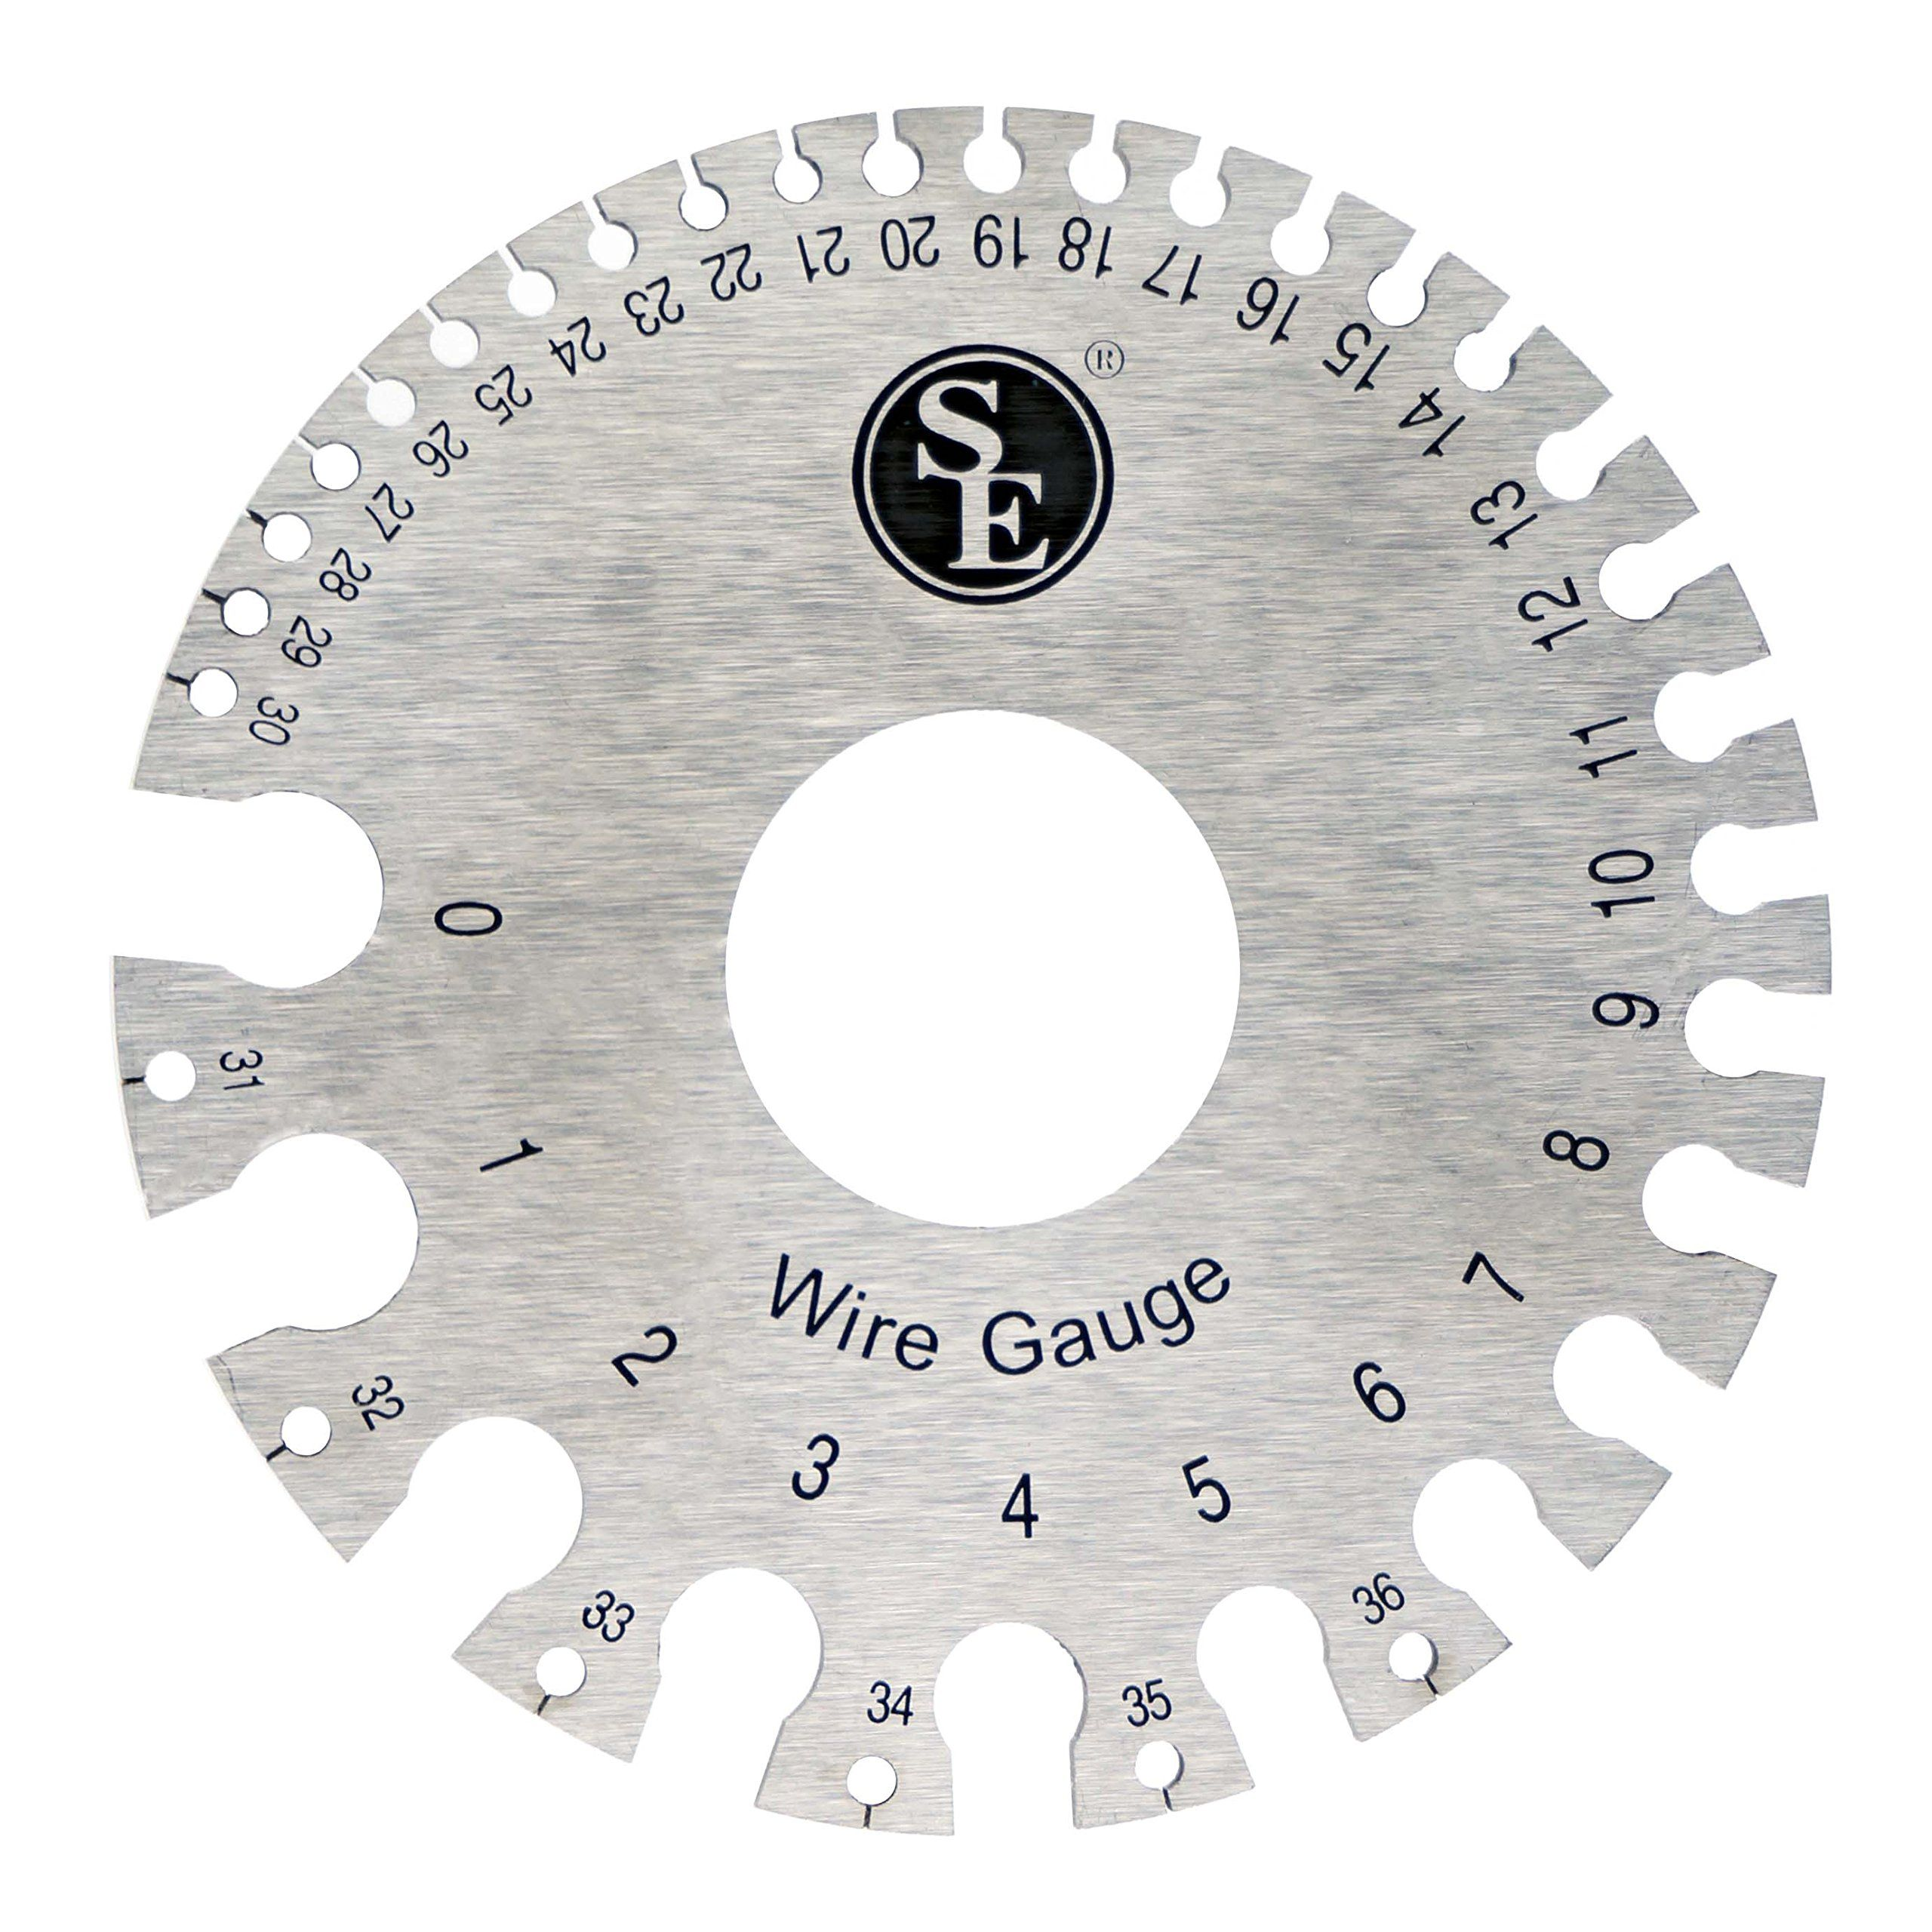 Se jt47wg c dual sided non ferrous wire gauge 0 36 american se dual sided non ferrous wire gauge american standard awg sae measurement markings in both awg sae material tempered hardened steel with satin greentooth Image collections